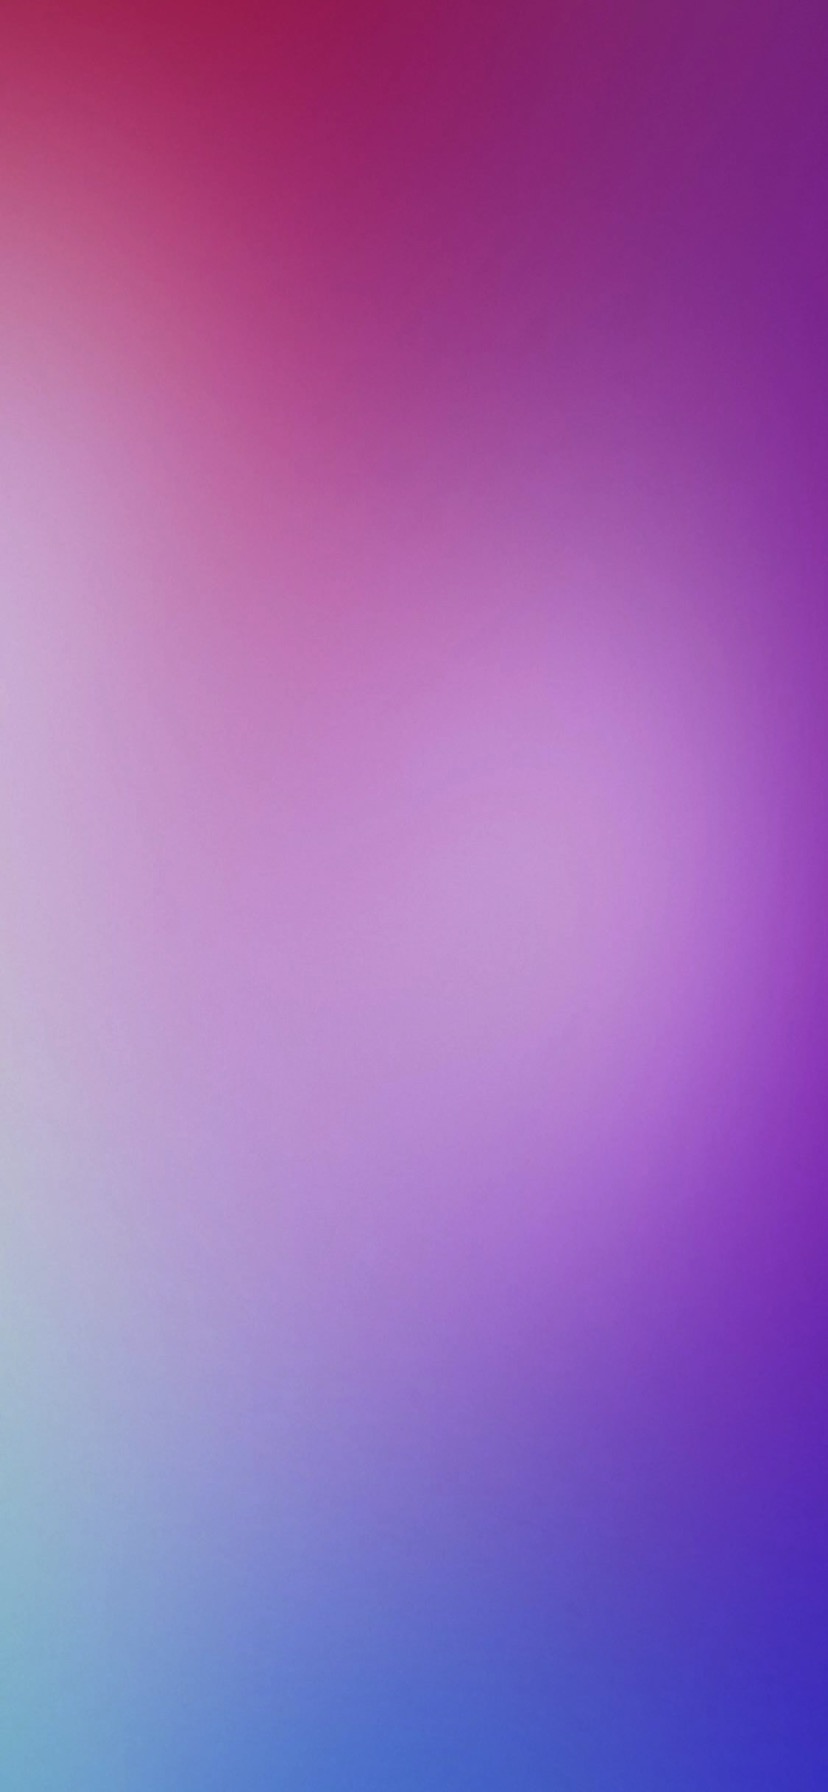 iPhone XR 壁紙 wallpaper 1064